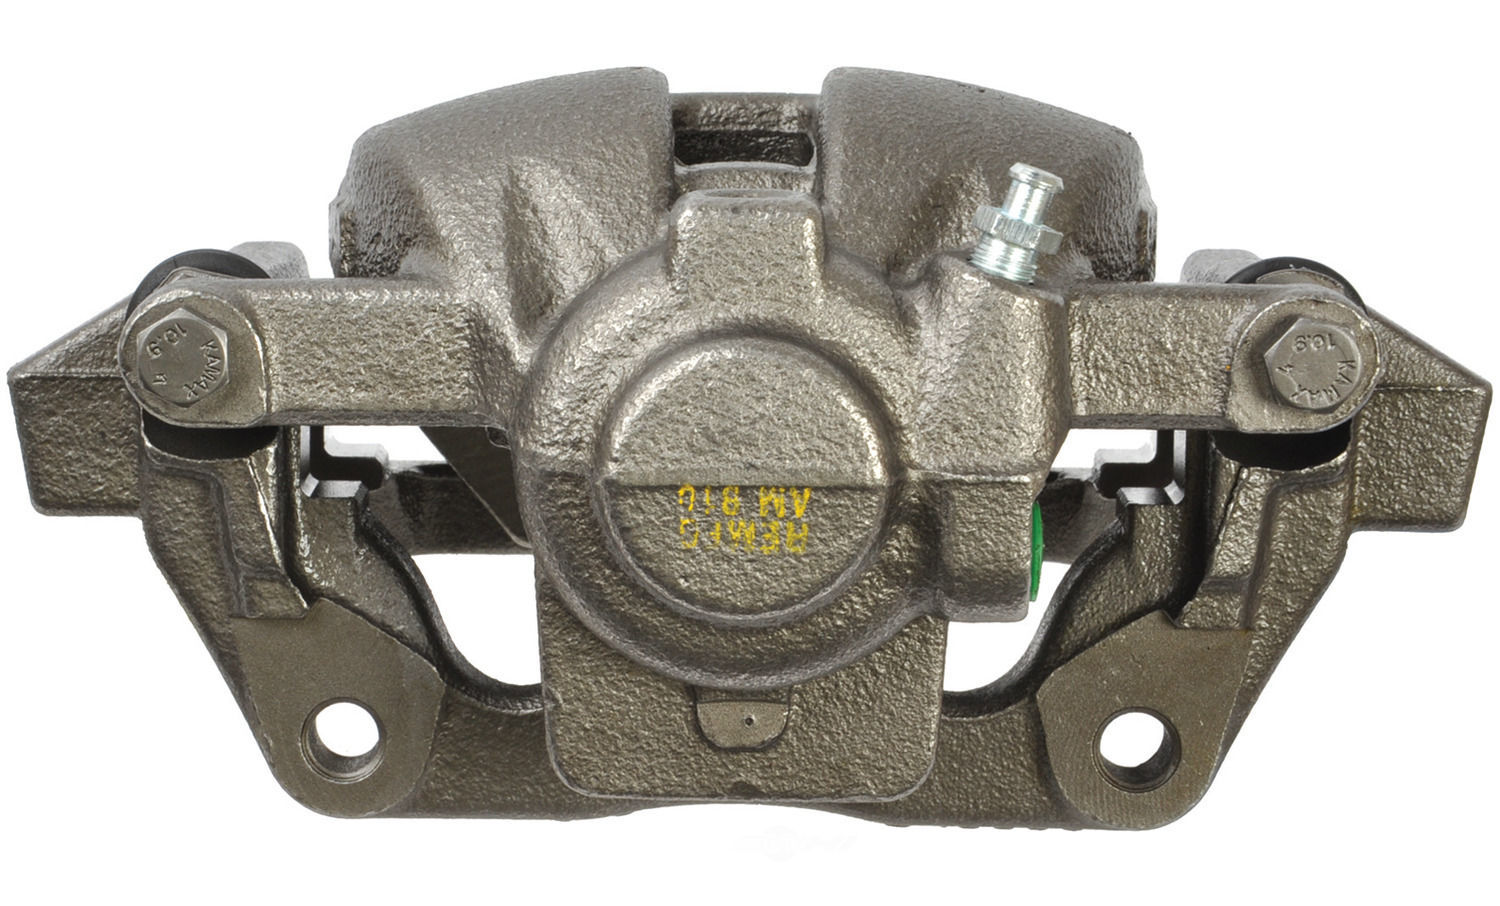 CARDONE/A-1 CARDONE - Remanufactured Friction Choice Caliper w/Bracket (Front Right) - A1C 19-B3321A